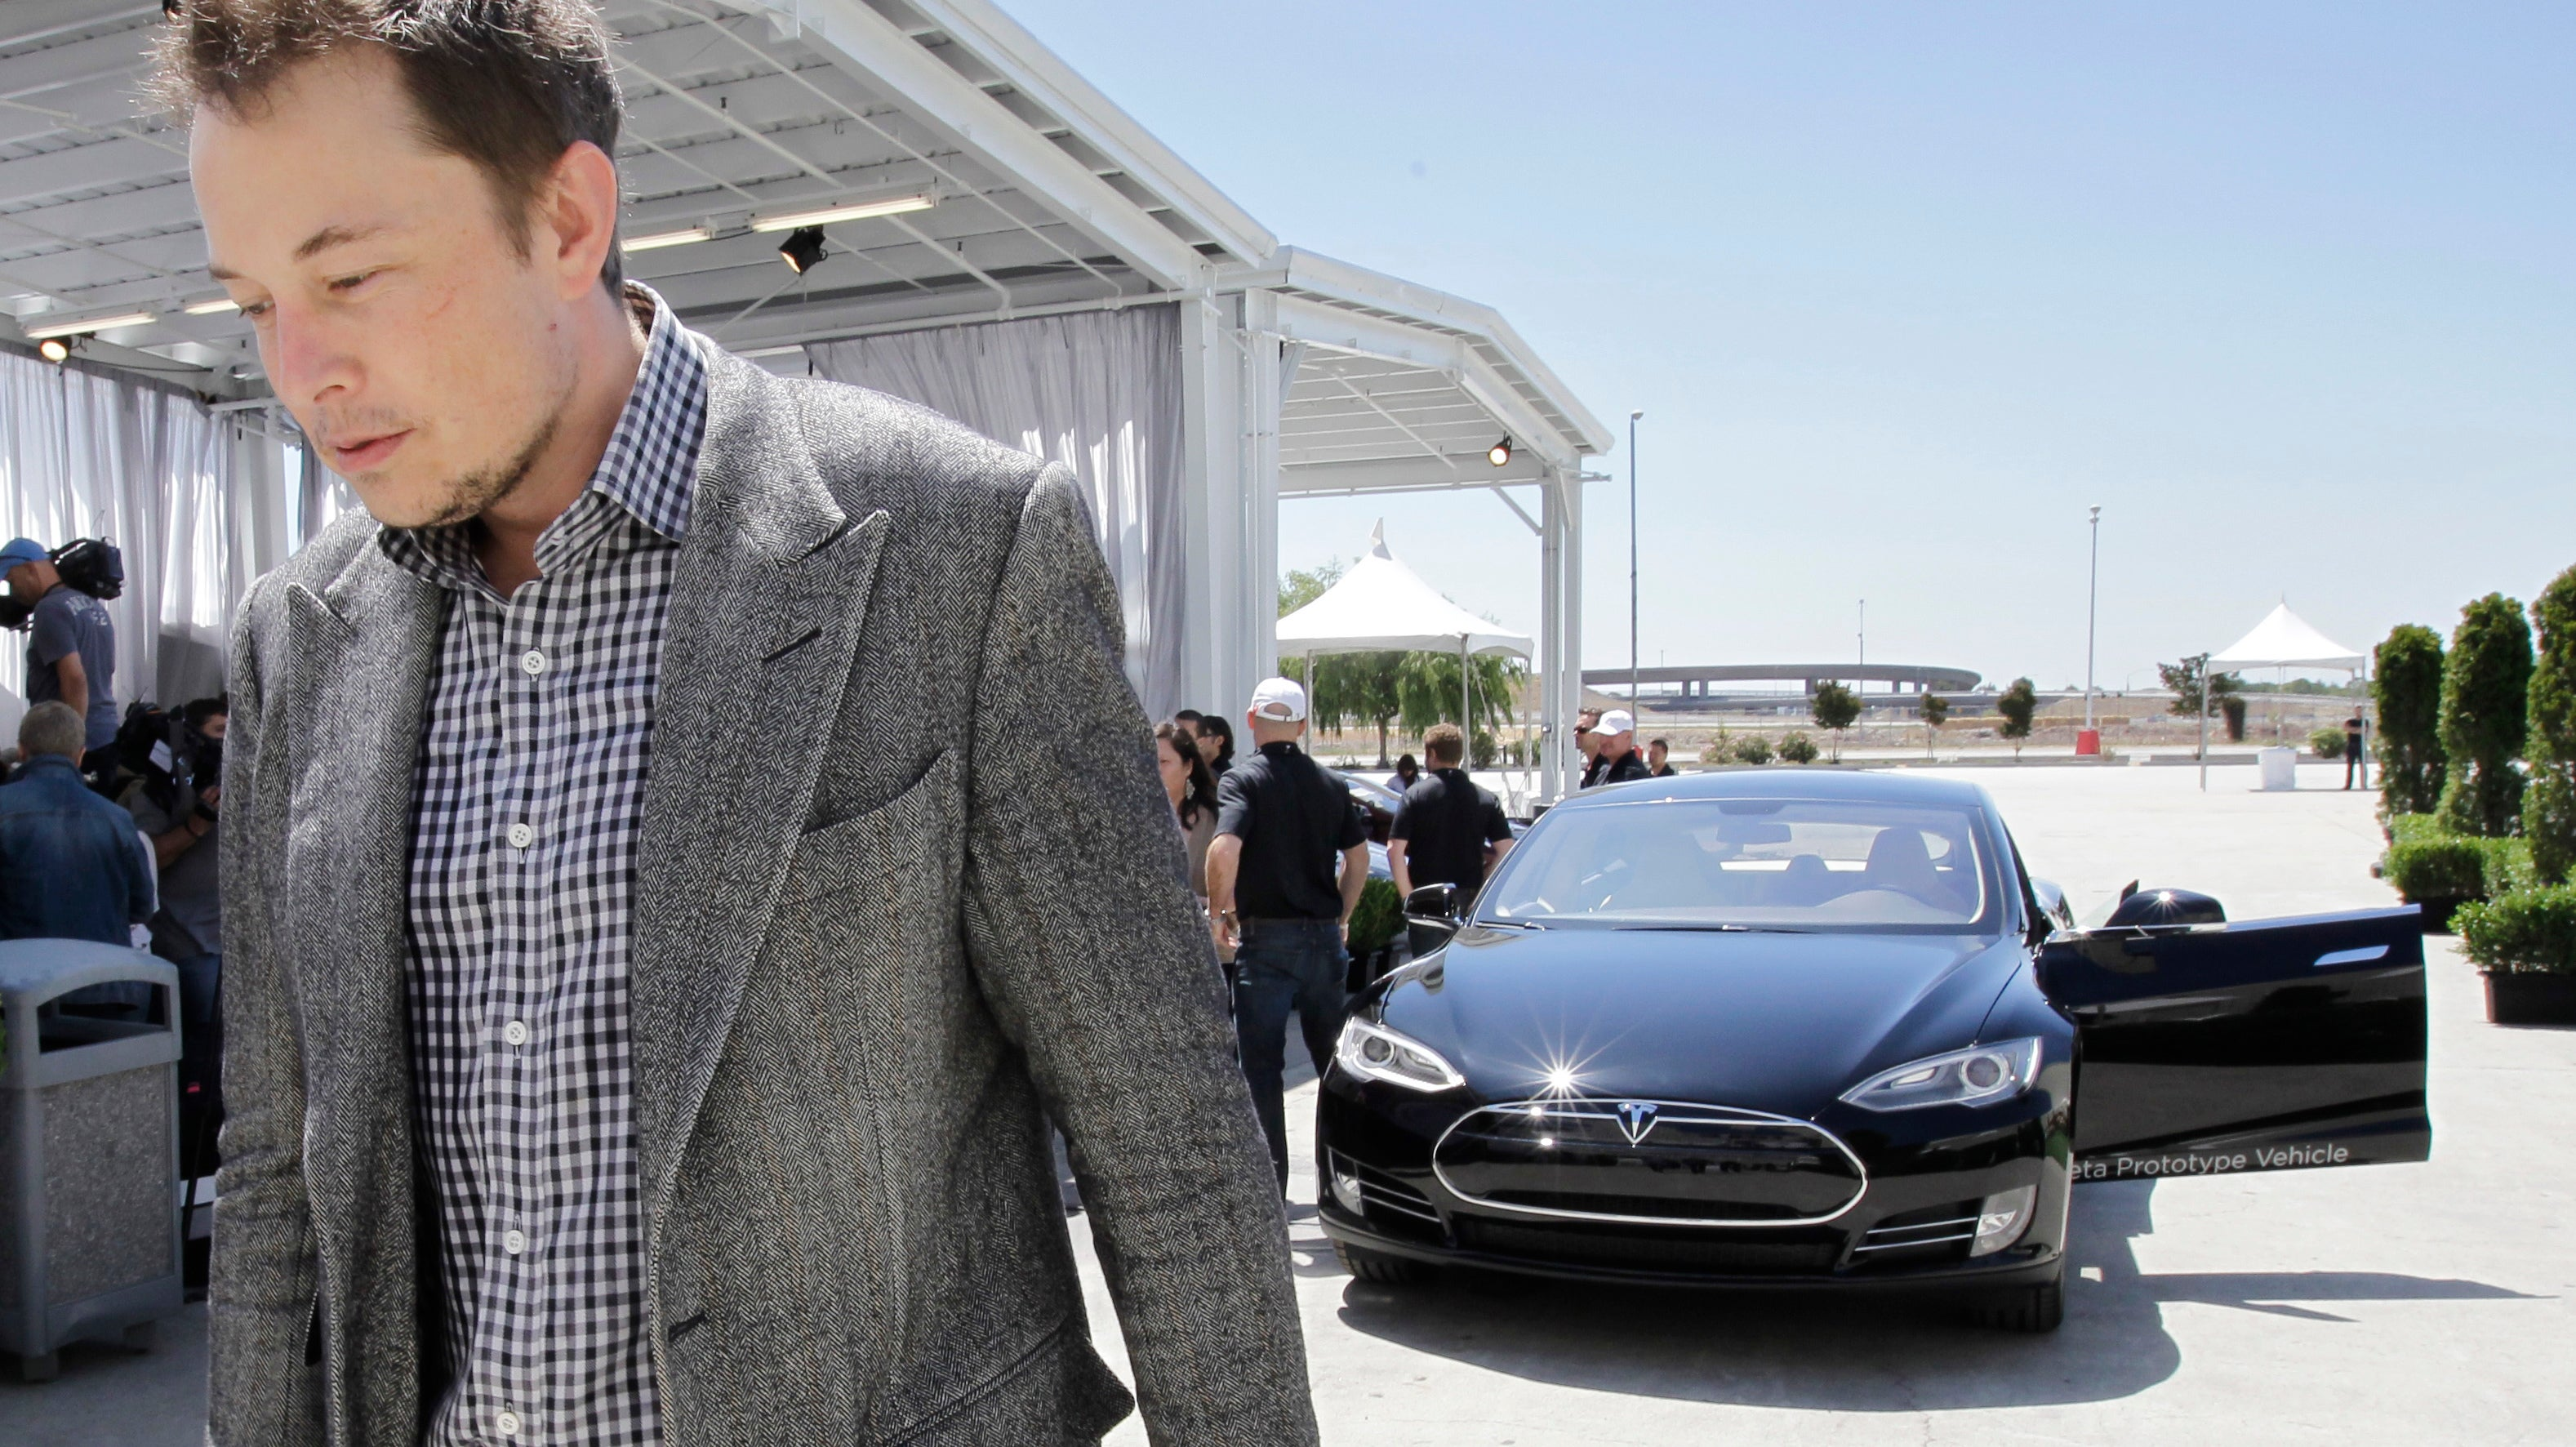 Elon Musk On Whistleblower Accusing Tesla Of Illegally Spying On Employee: 'This Guy Is Super [Nuts Emoji]'